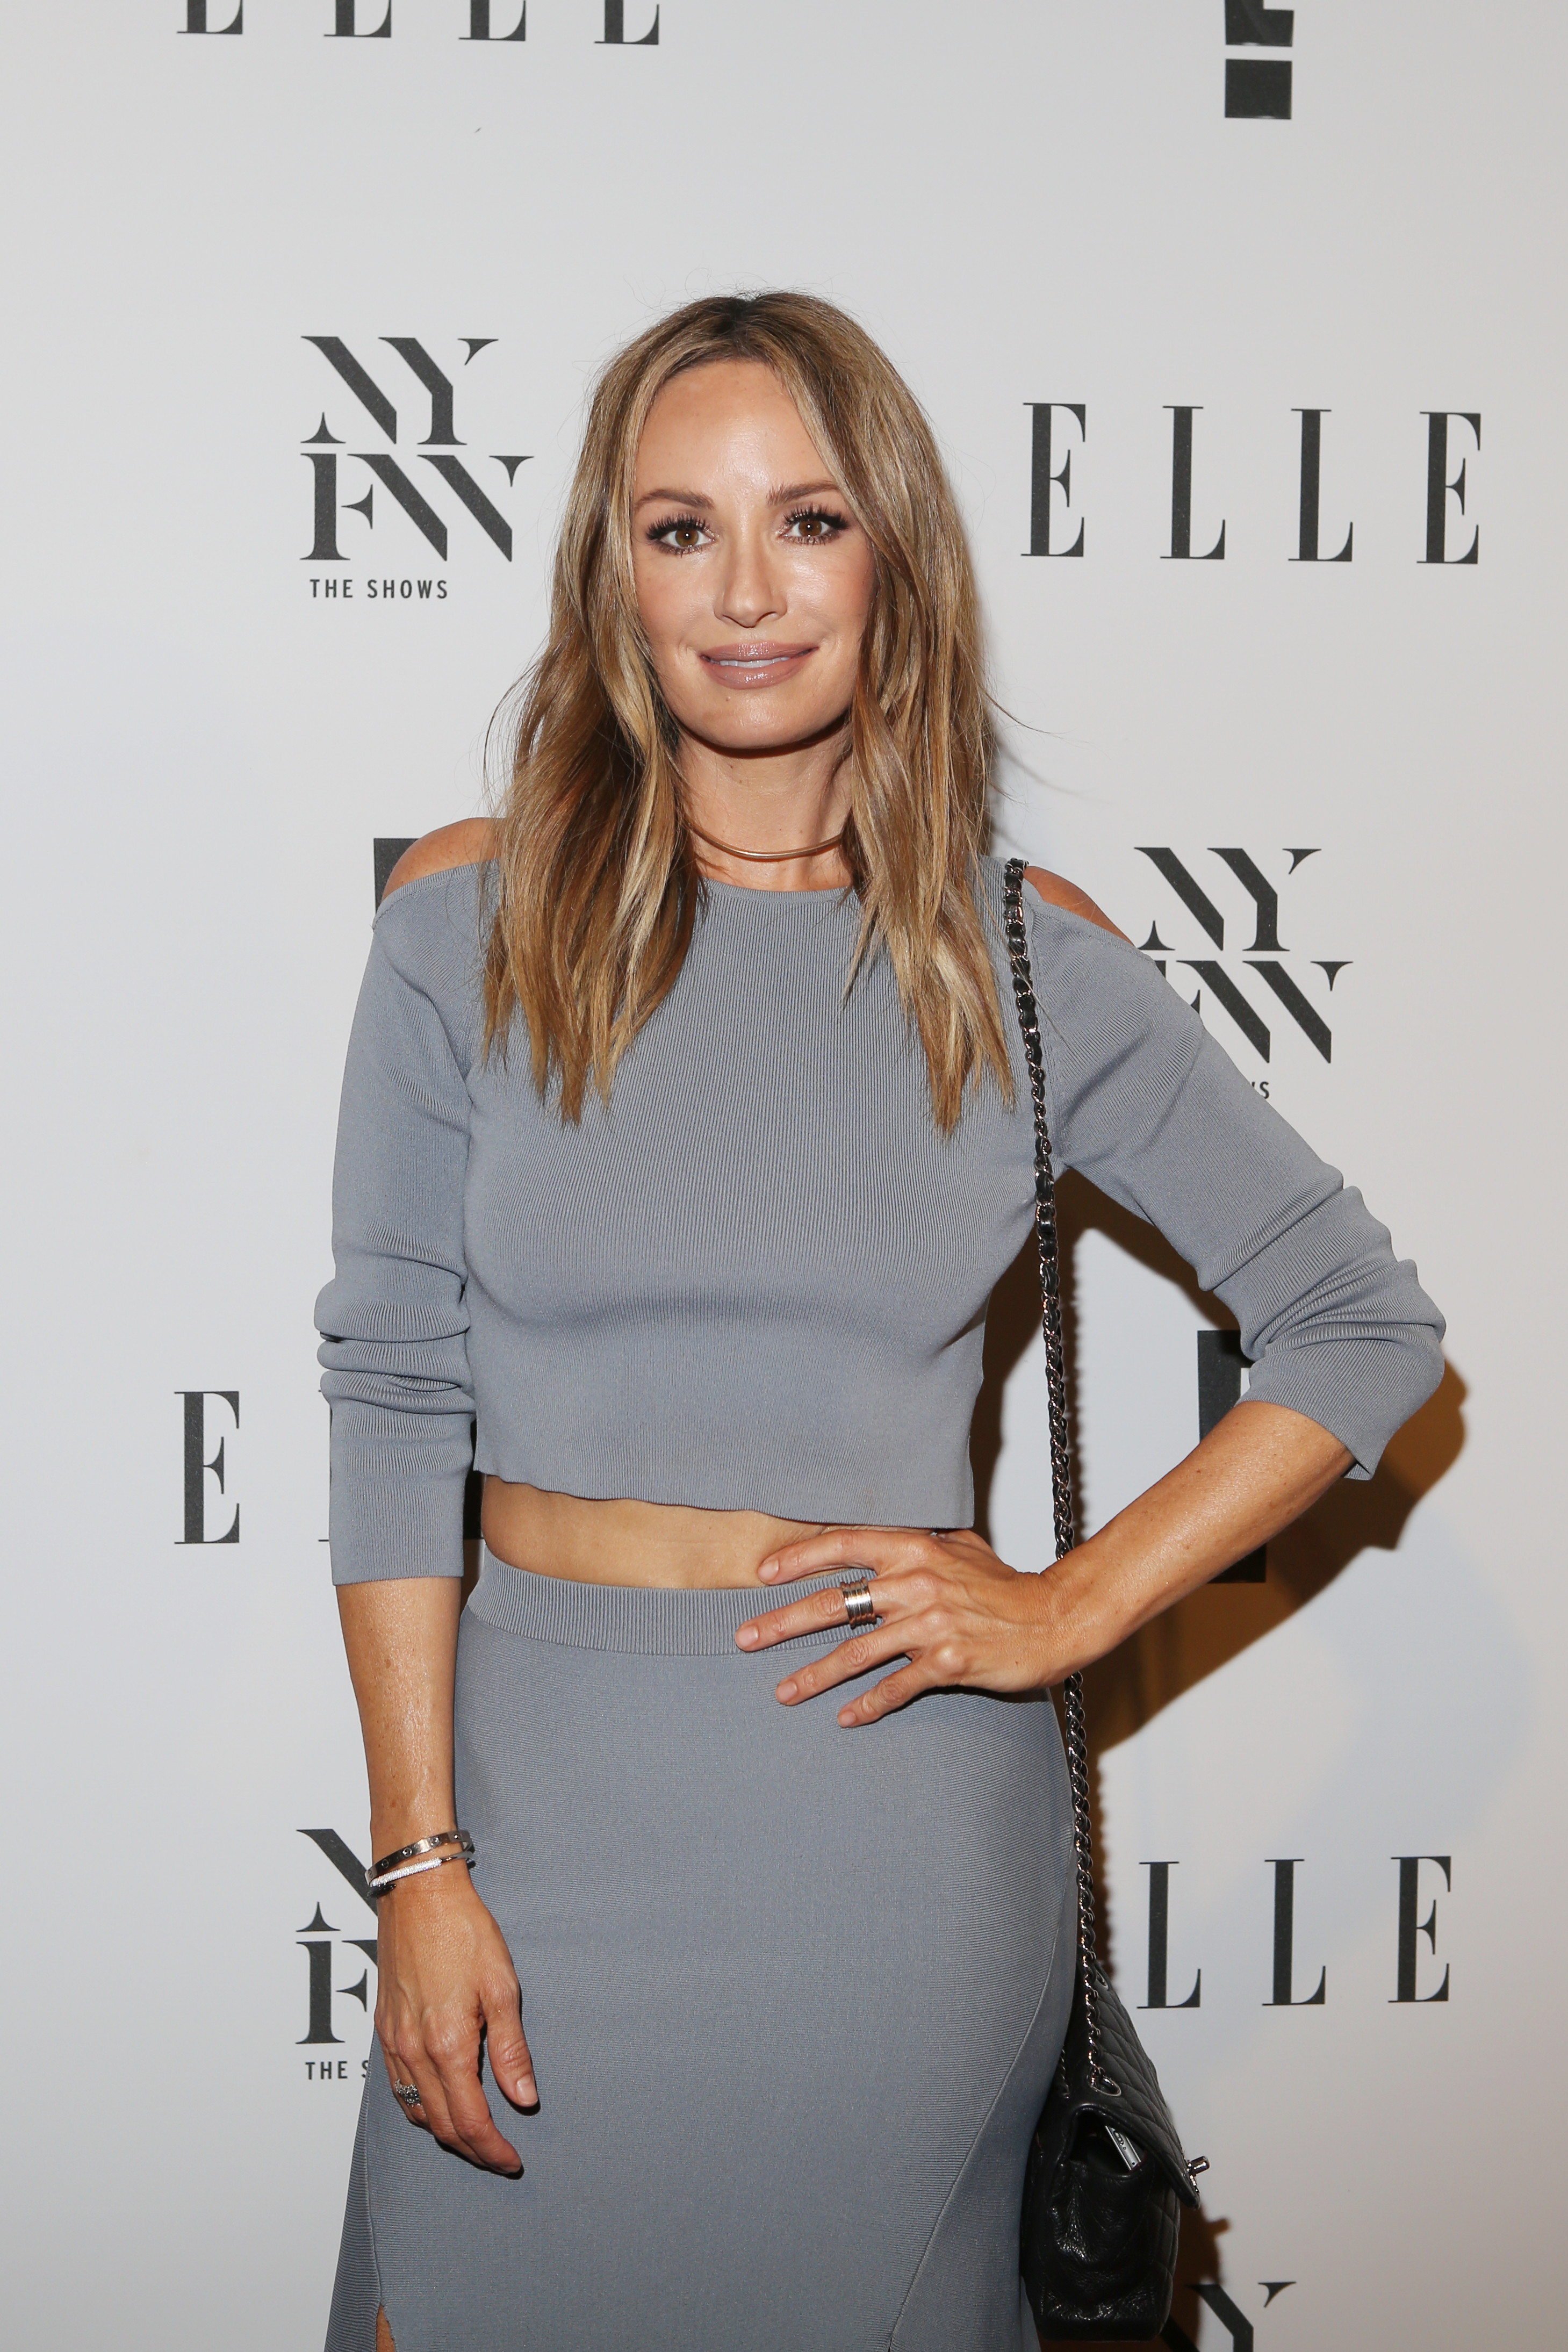 E!, ELLE & IMG KICK-OFF NYFW: THE SHOWS WITH EXCLUSIVE CELEBRATION HELD AT SANTINA                                    Featuring: Catt Sadler                  Where: New York, New York, United States                  When: 07 Sep 2016                  Credit: Derrick Salters/WENN.com